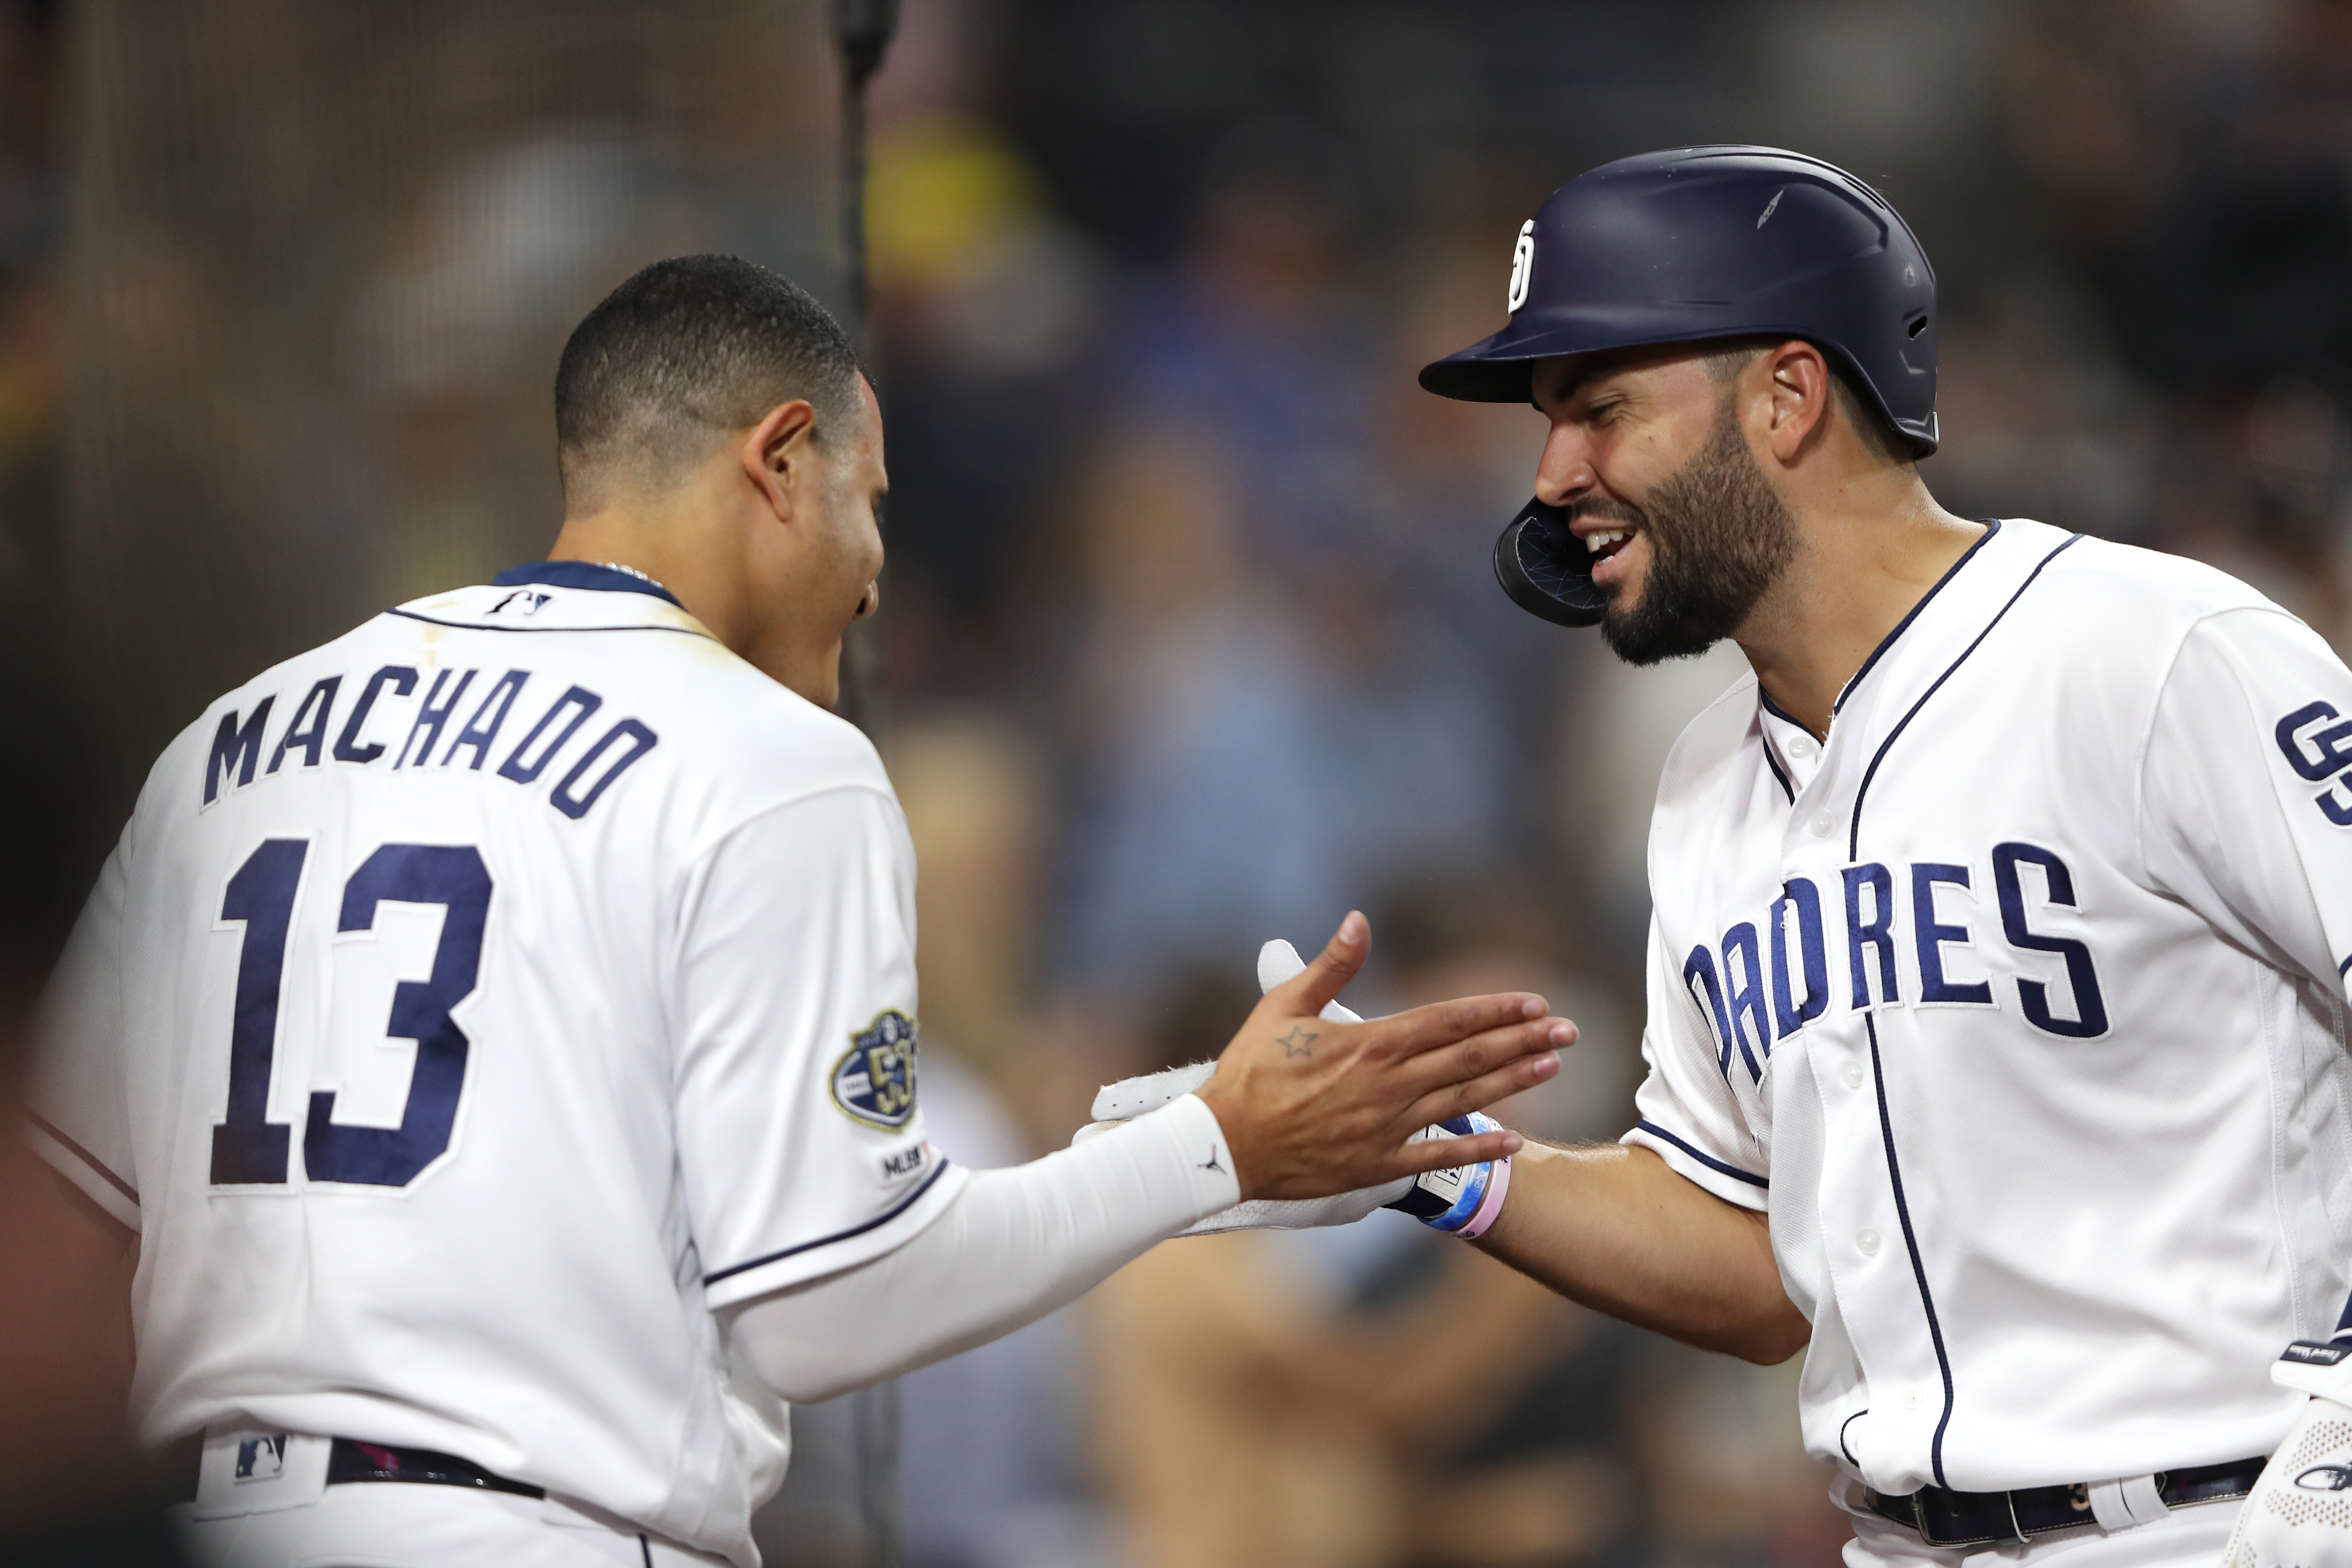 Padres Manny Machado and Eric Hosmer when they were not playing against the D-backs.